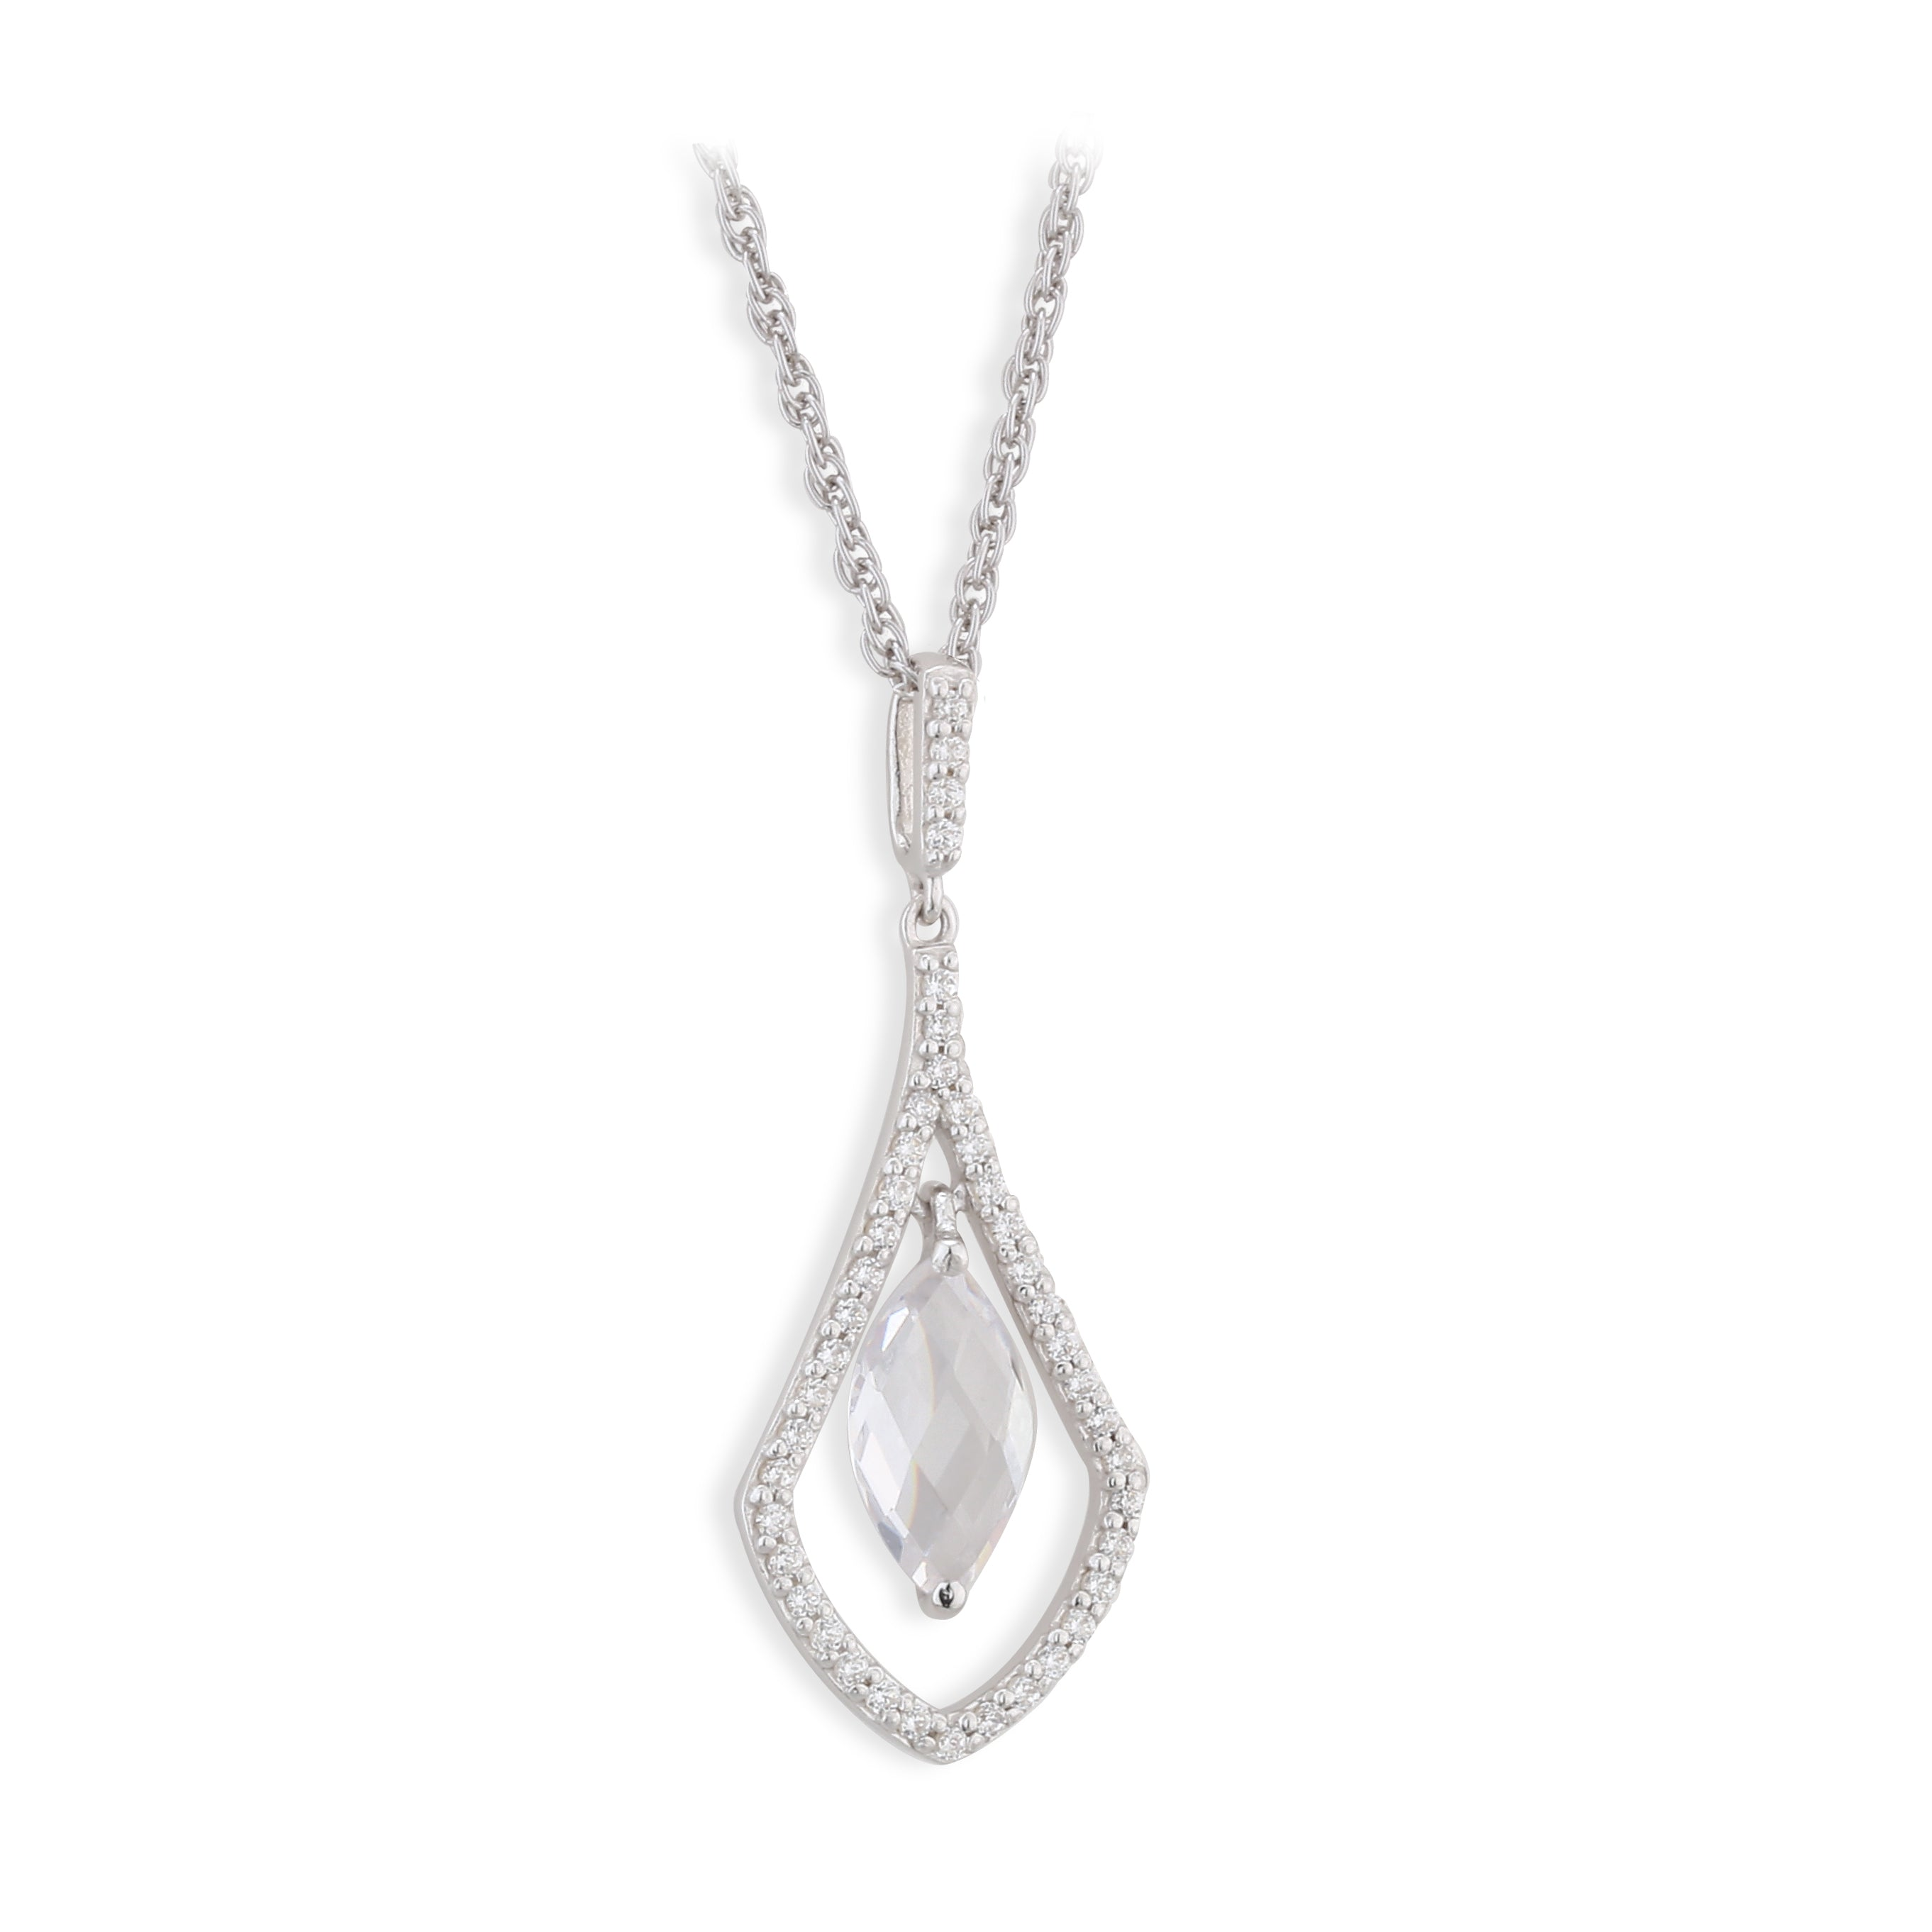 Paul Costelloe Sterling Silver and CZ Necklace